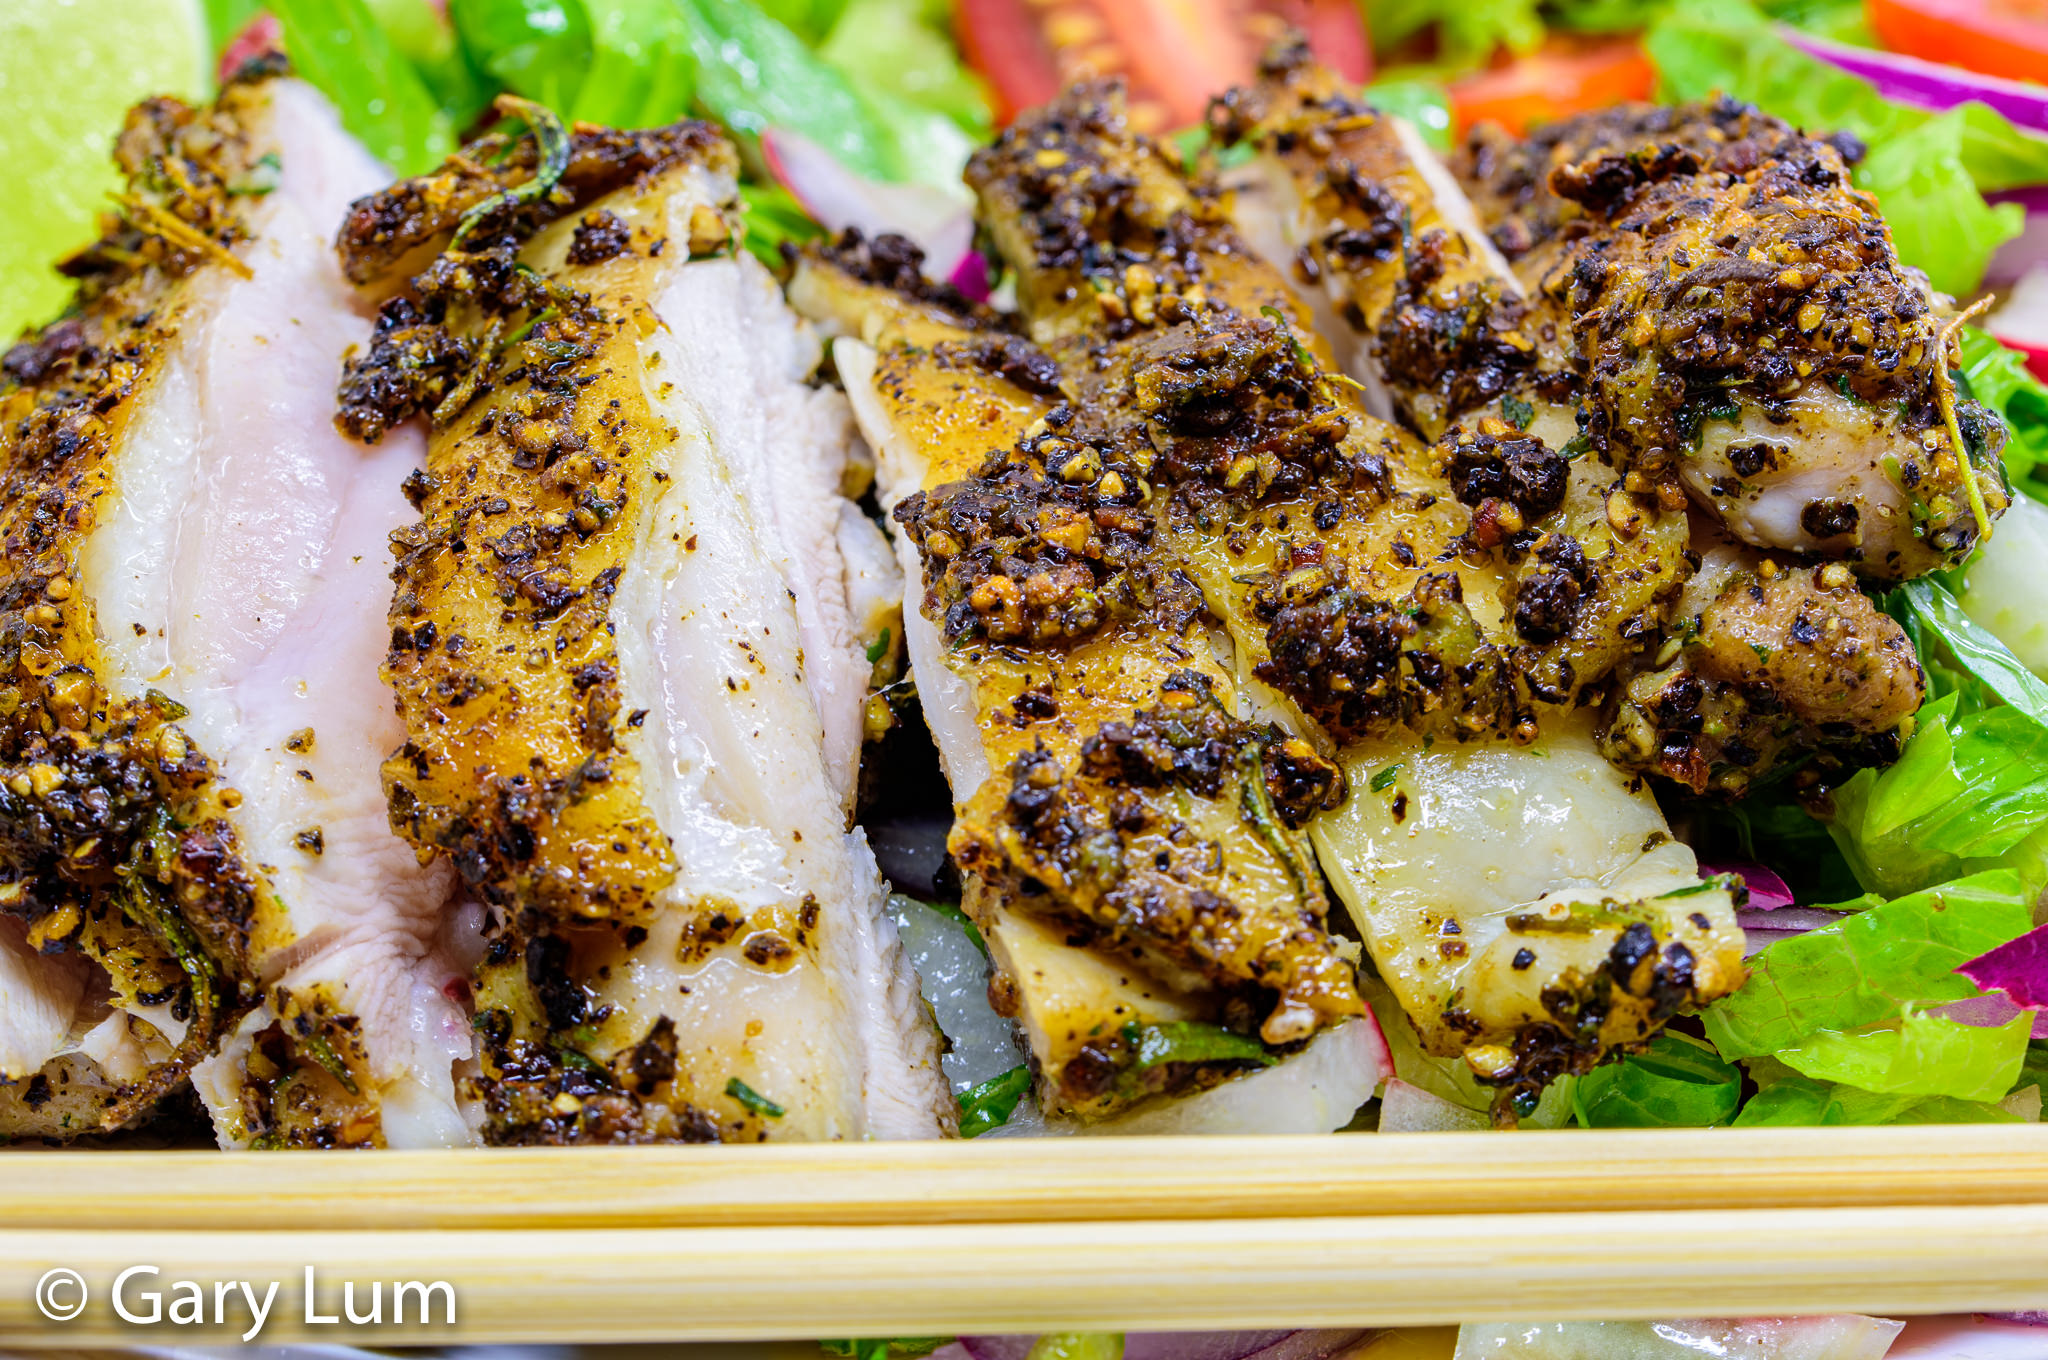 Close up. Pan-fried deboned chicken thigh and salad. Gary Lum.